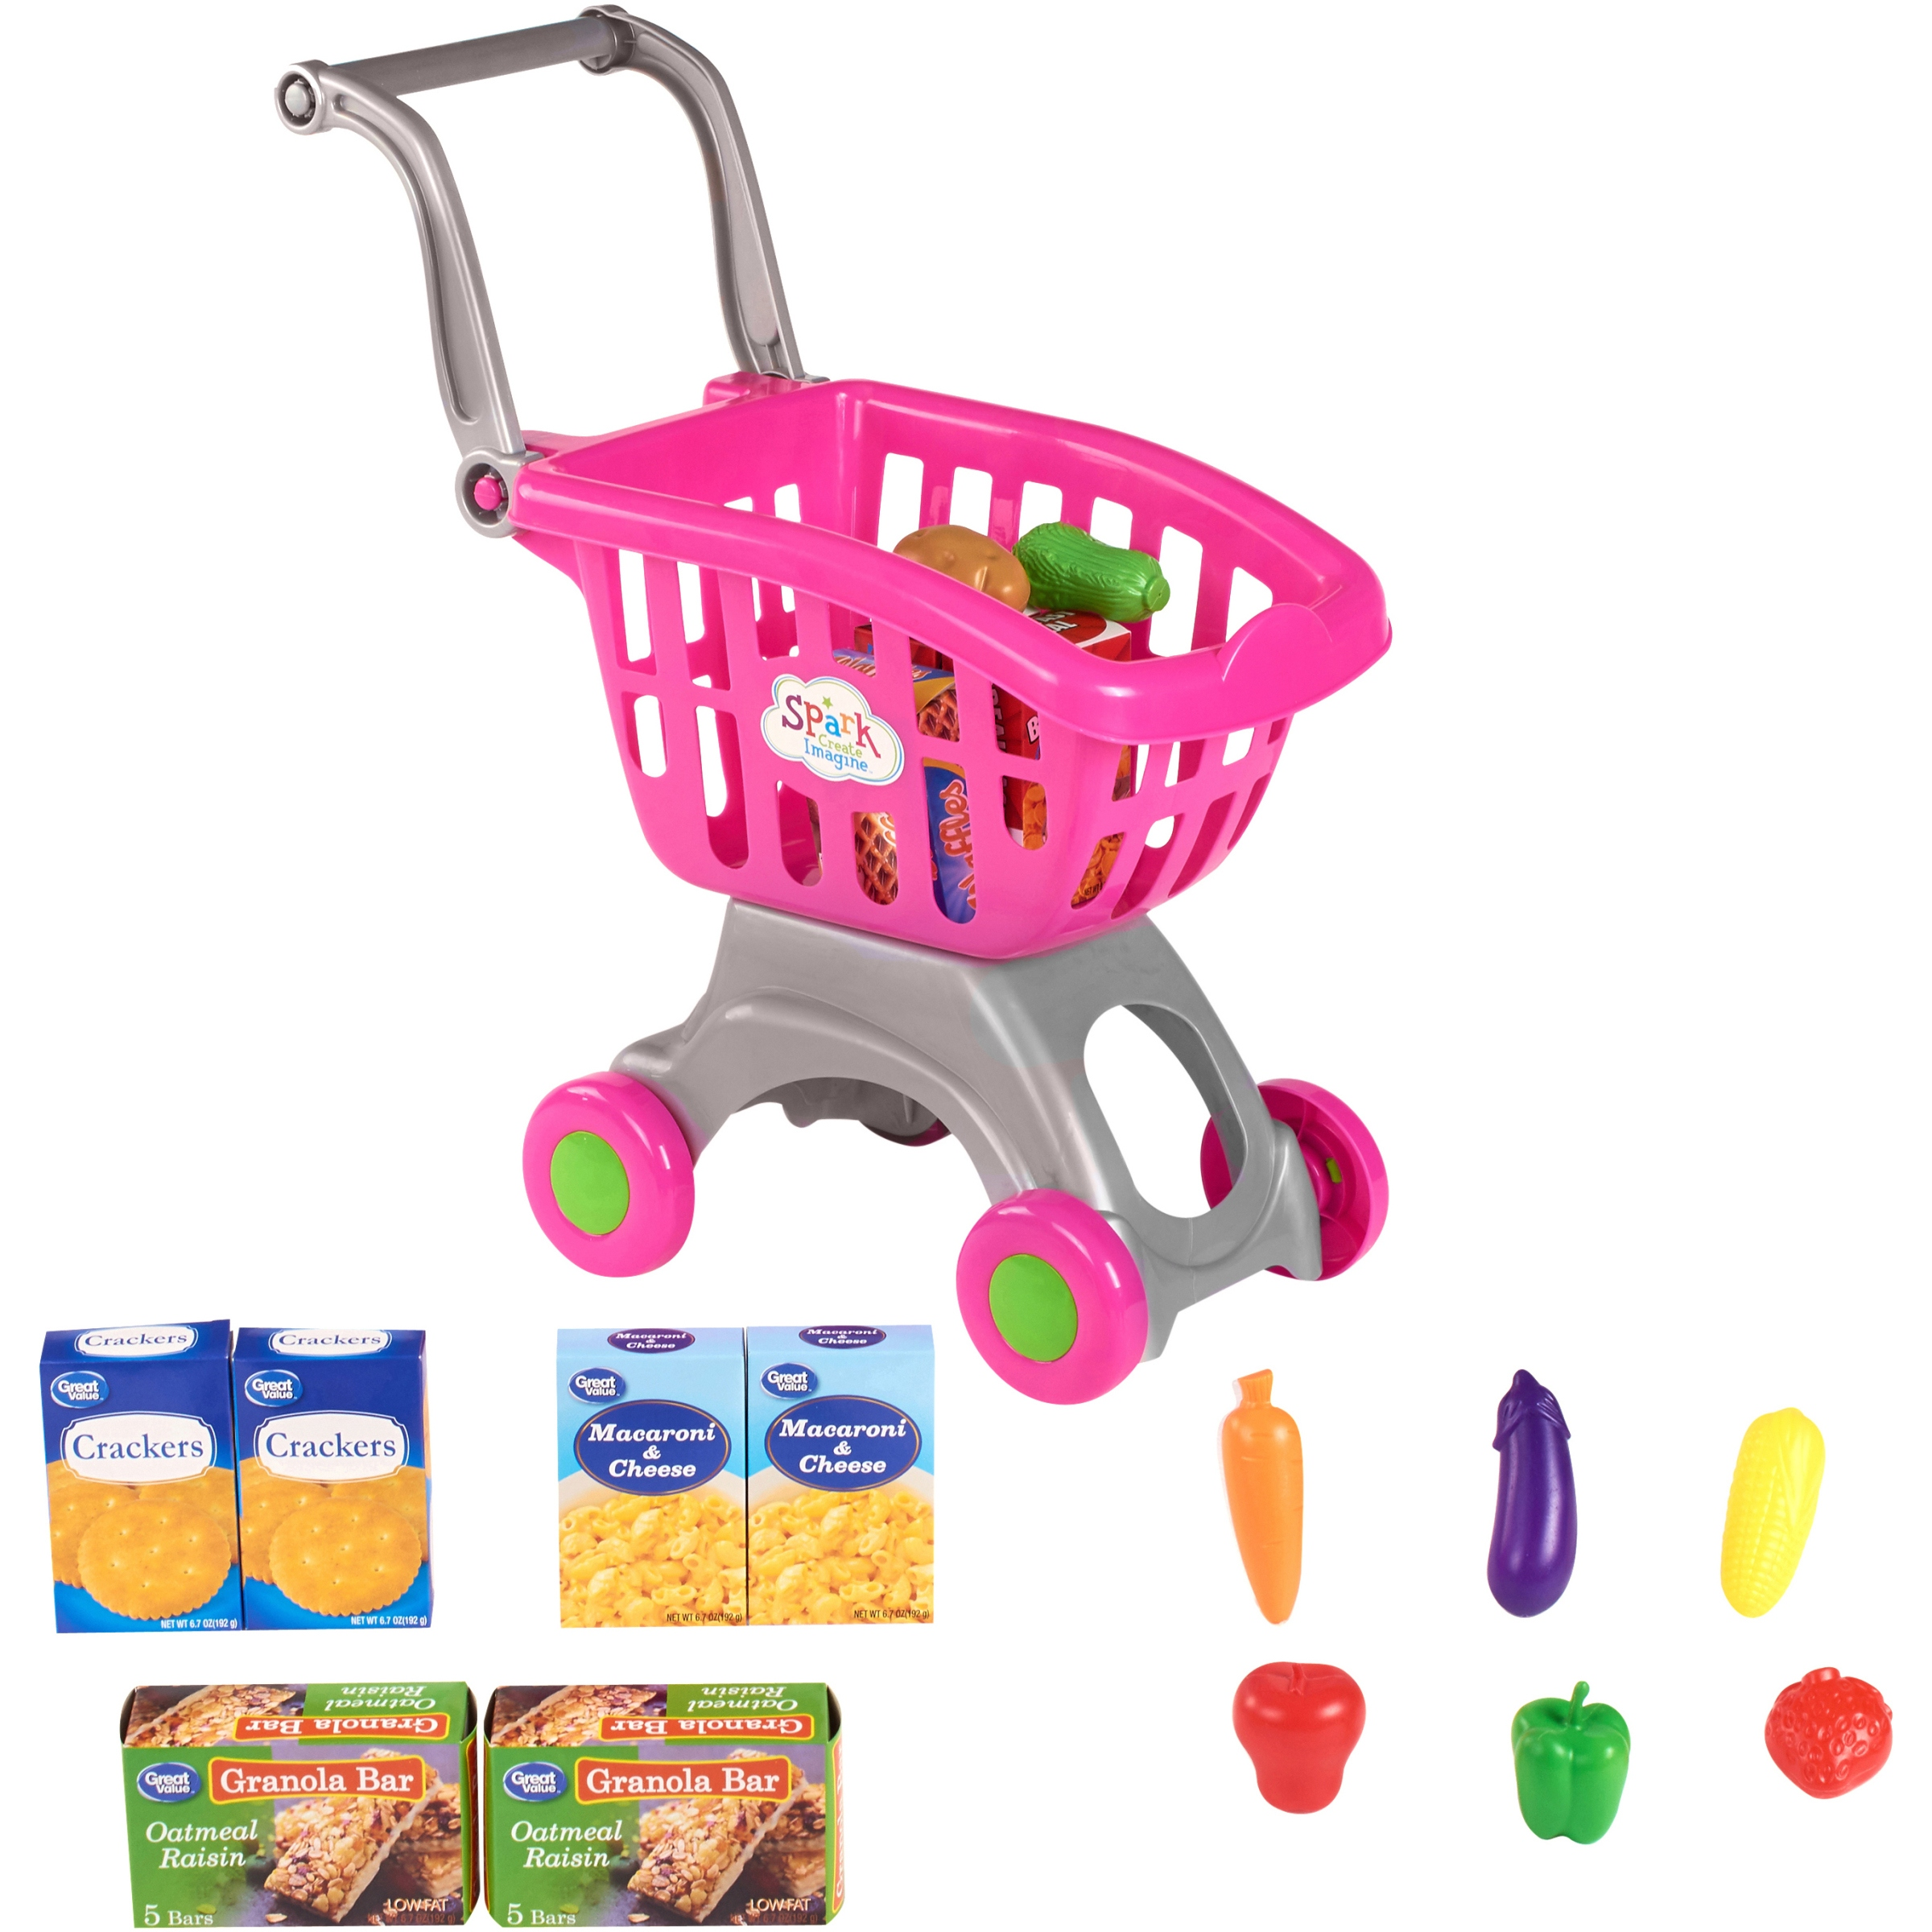 Spark Create Image Shopping Cart Food Play Set Pink Designed For Ages 2 And Up Brickseek